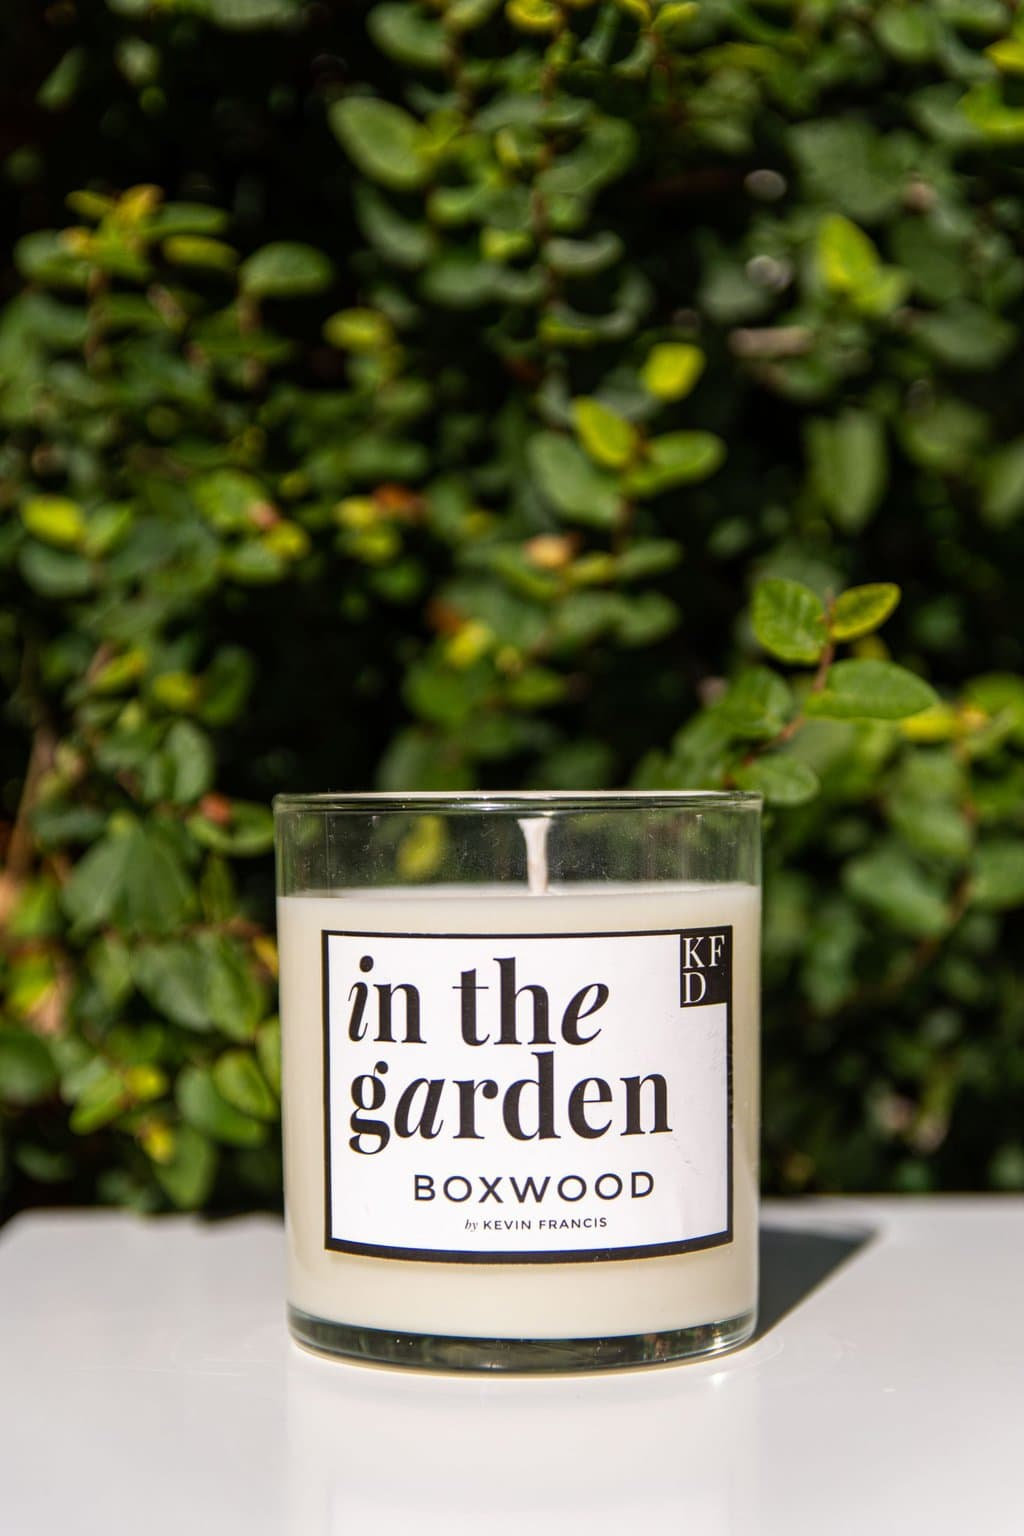 IN THE GARDEN scented candle collection inspired by the traditional Southern garden with boxwood, hydrangea, jasmine, damask rose, and jasmine by Kevin Francis Design #southerngarden #garden #gardening #candles #scentedcandle